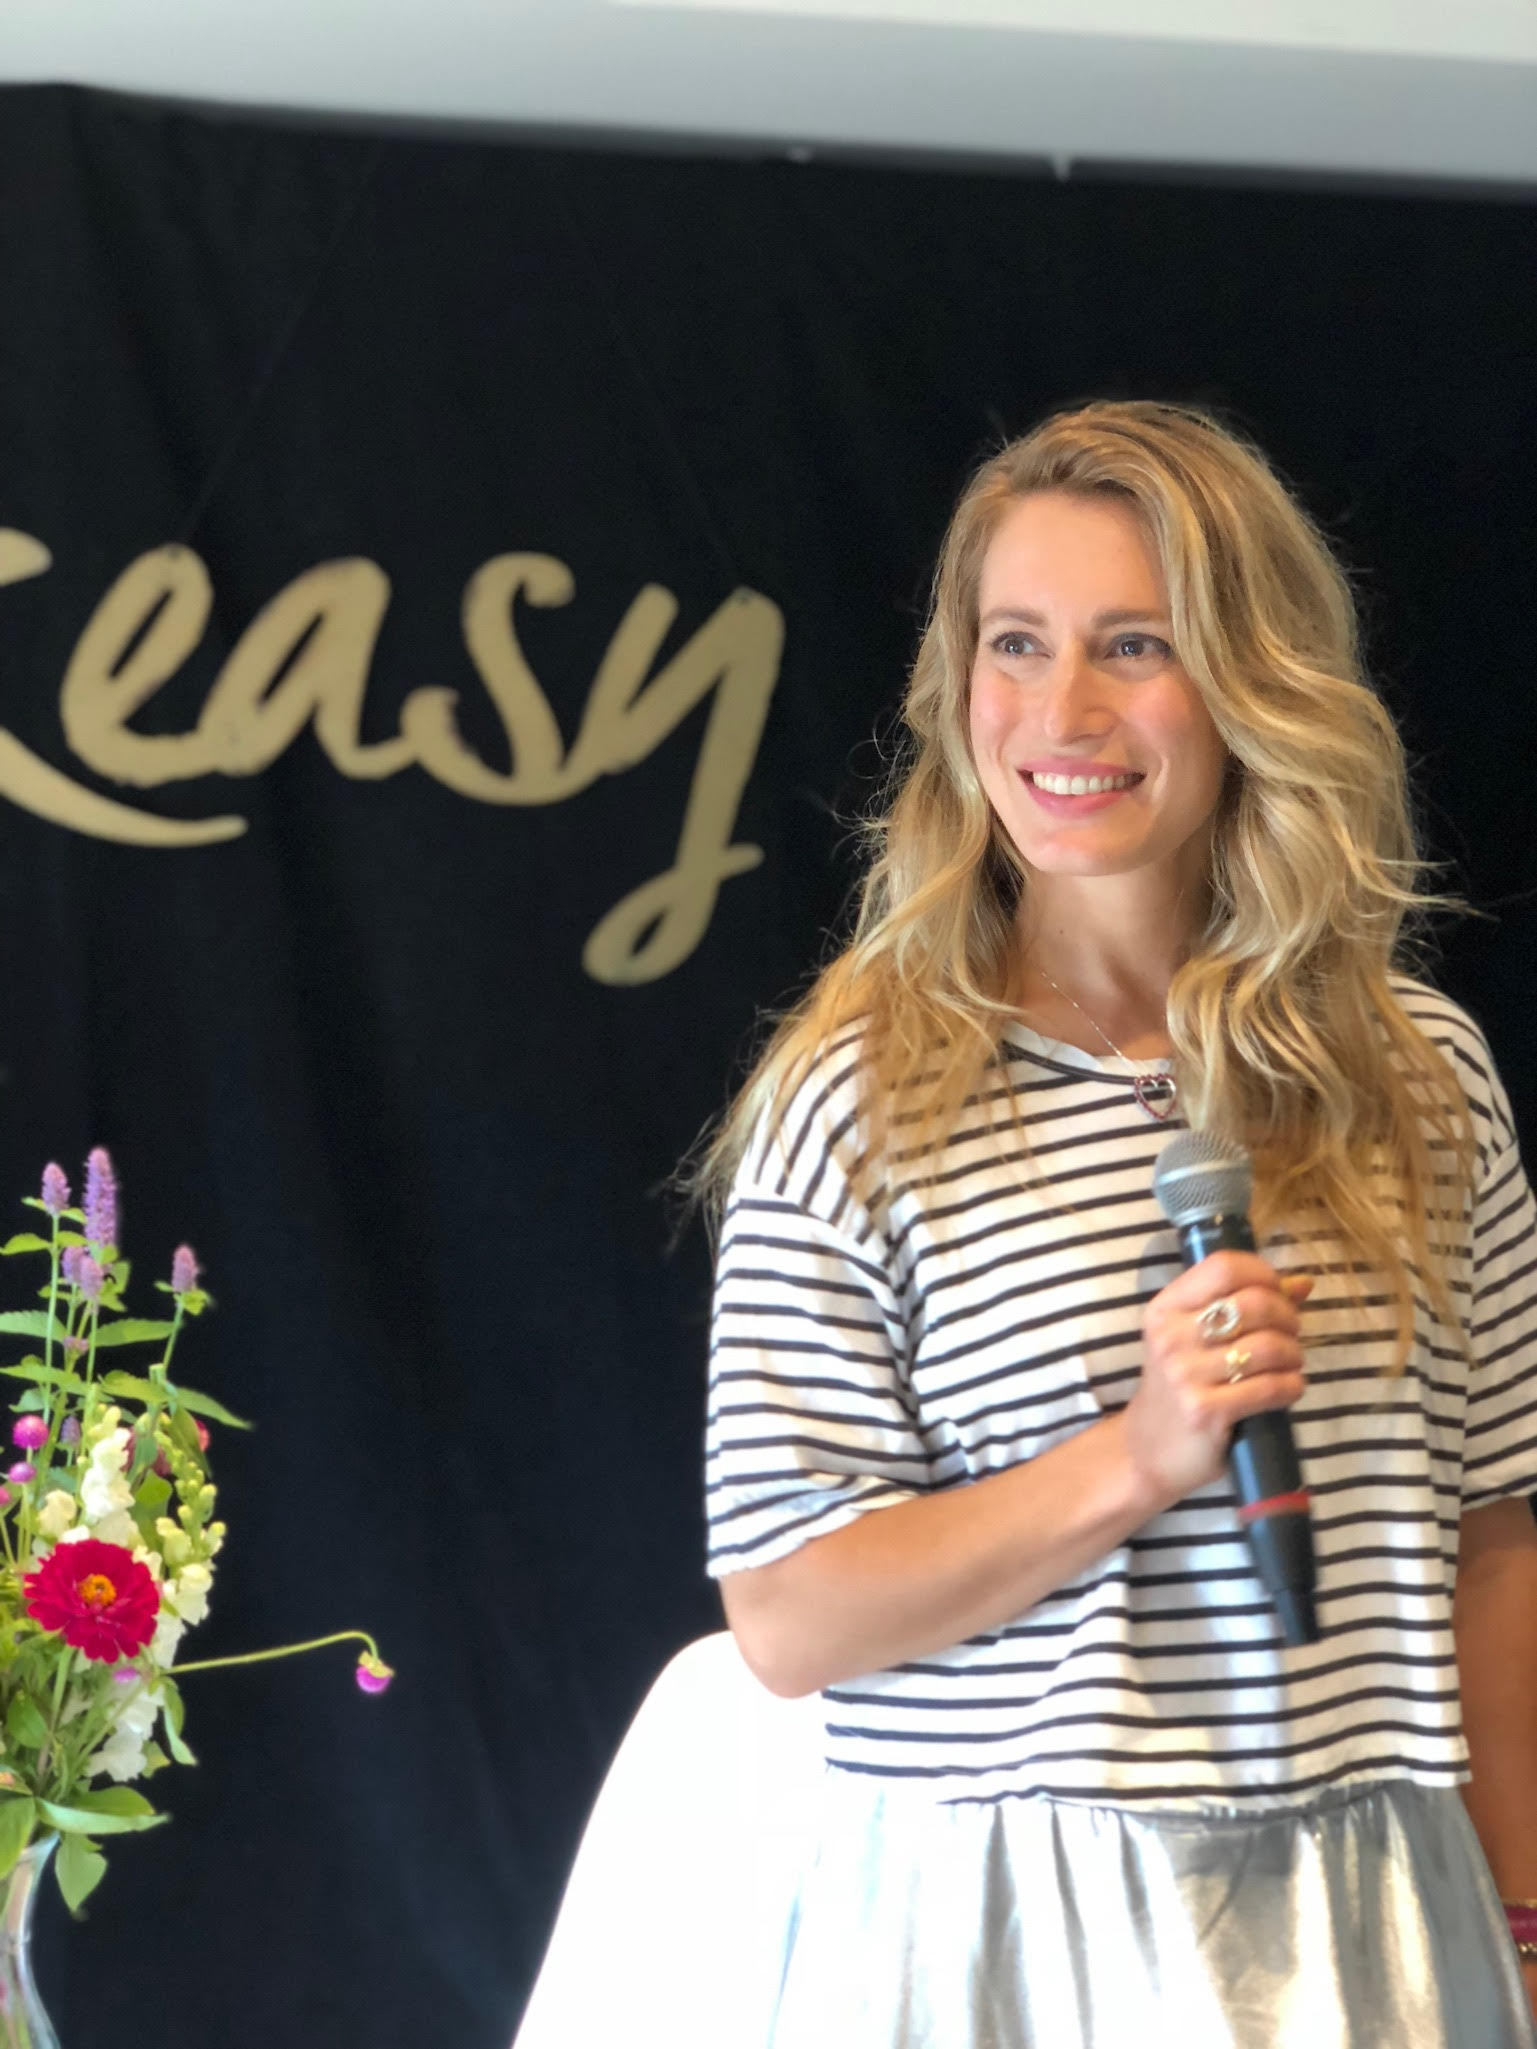 Gabby Bernstein's Review of the Institute for Integrative